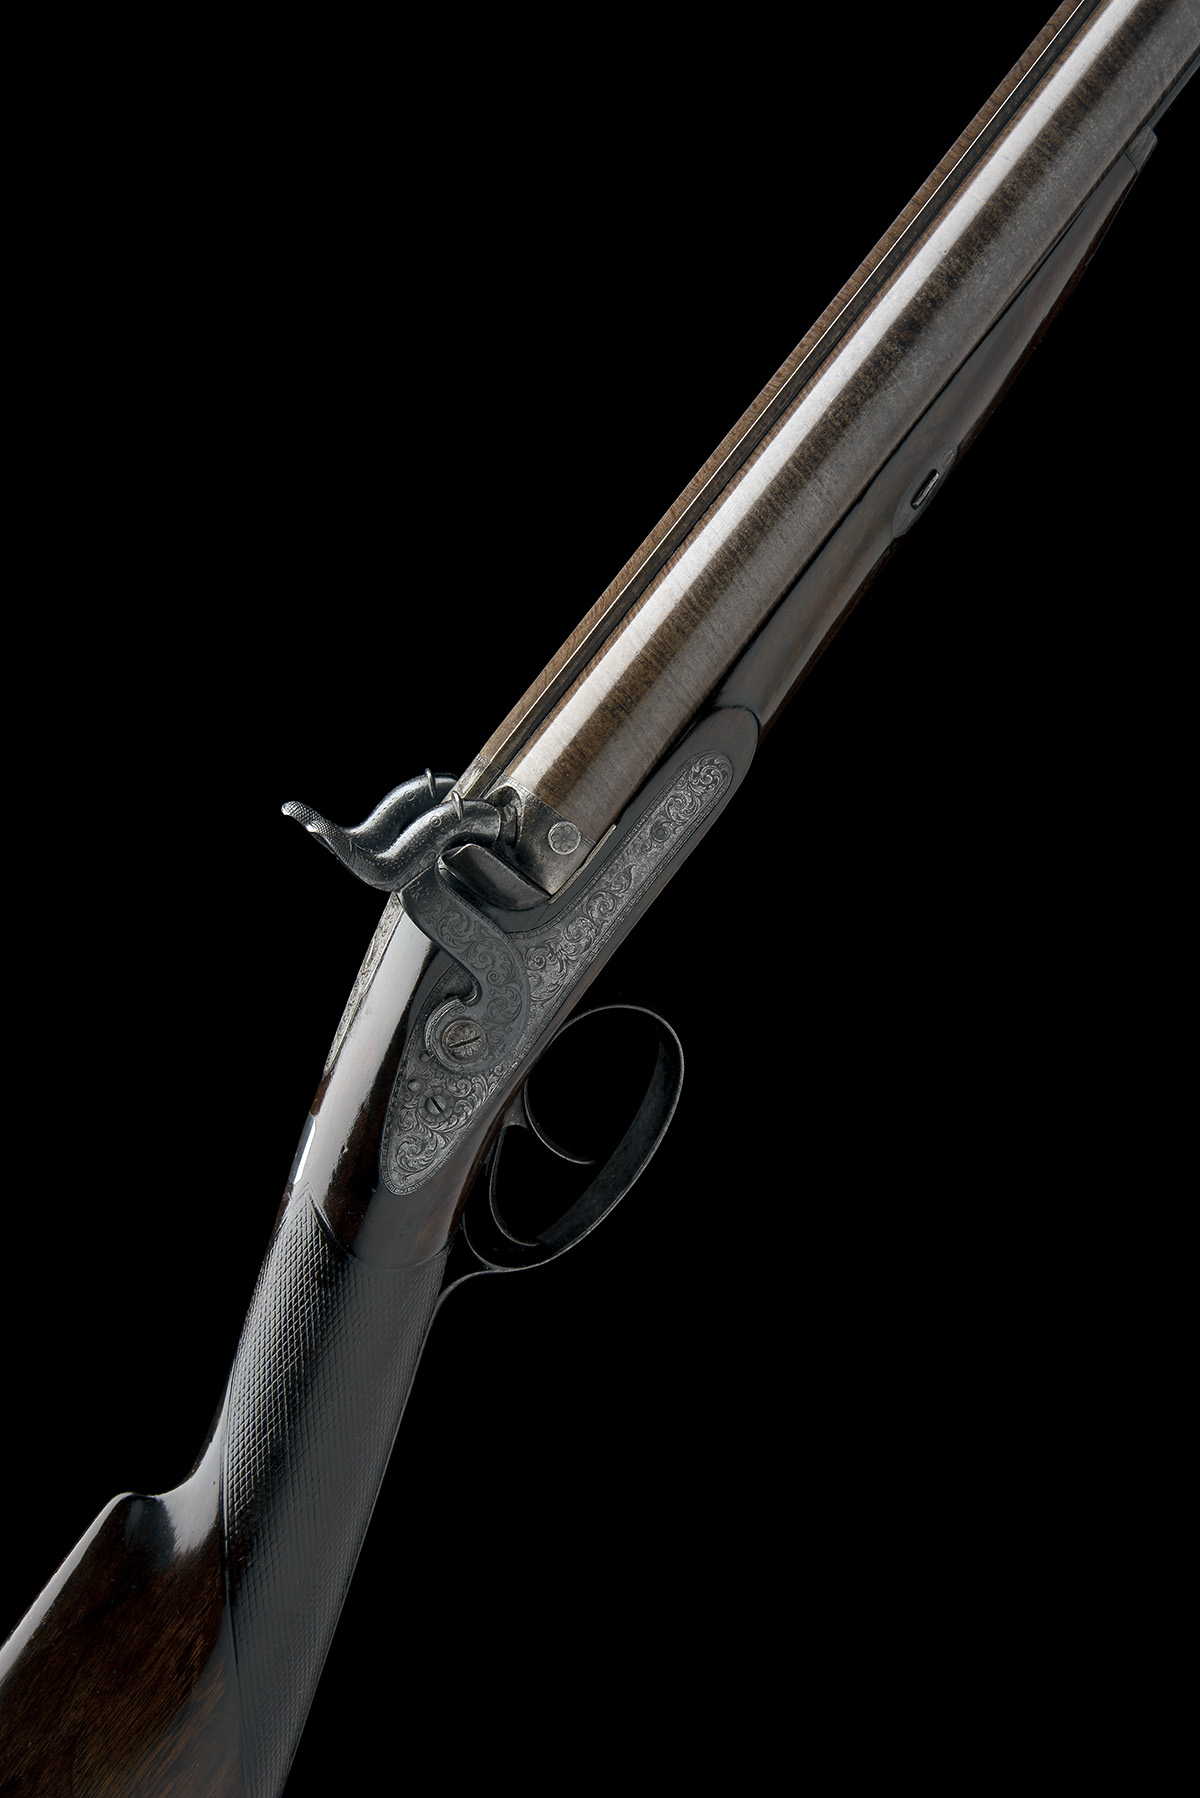 J.C. REILLY, LONDON A GOOD 12-BORE PERCUSSION DOUBLE-BARRELLED SPORTING-GUN, serial no 5580, for